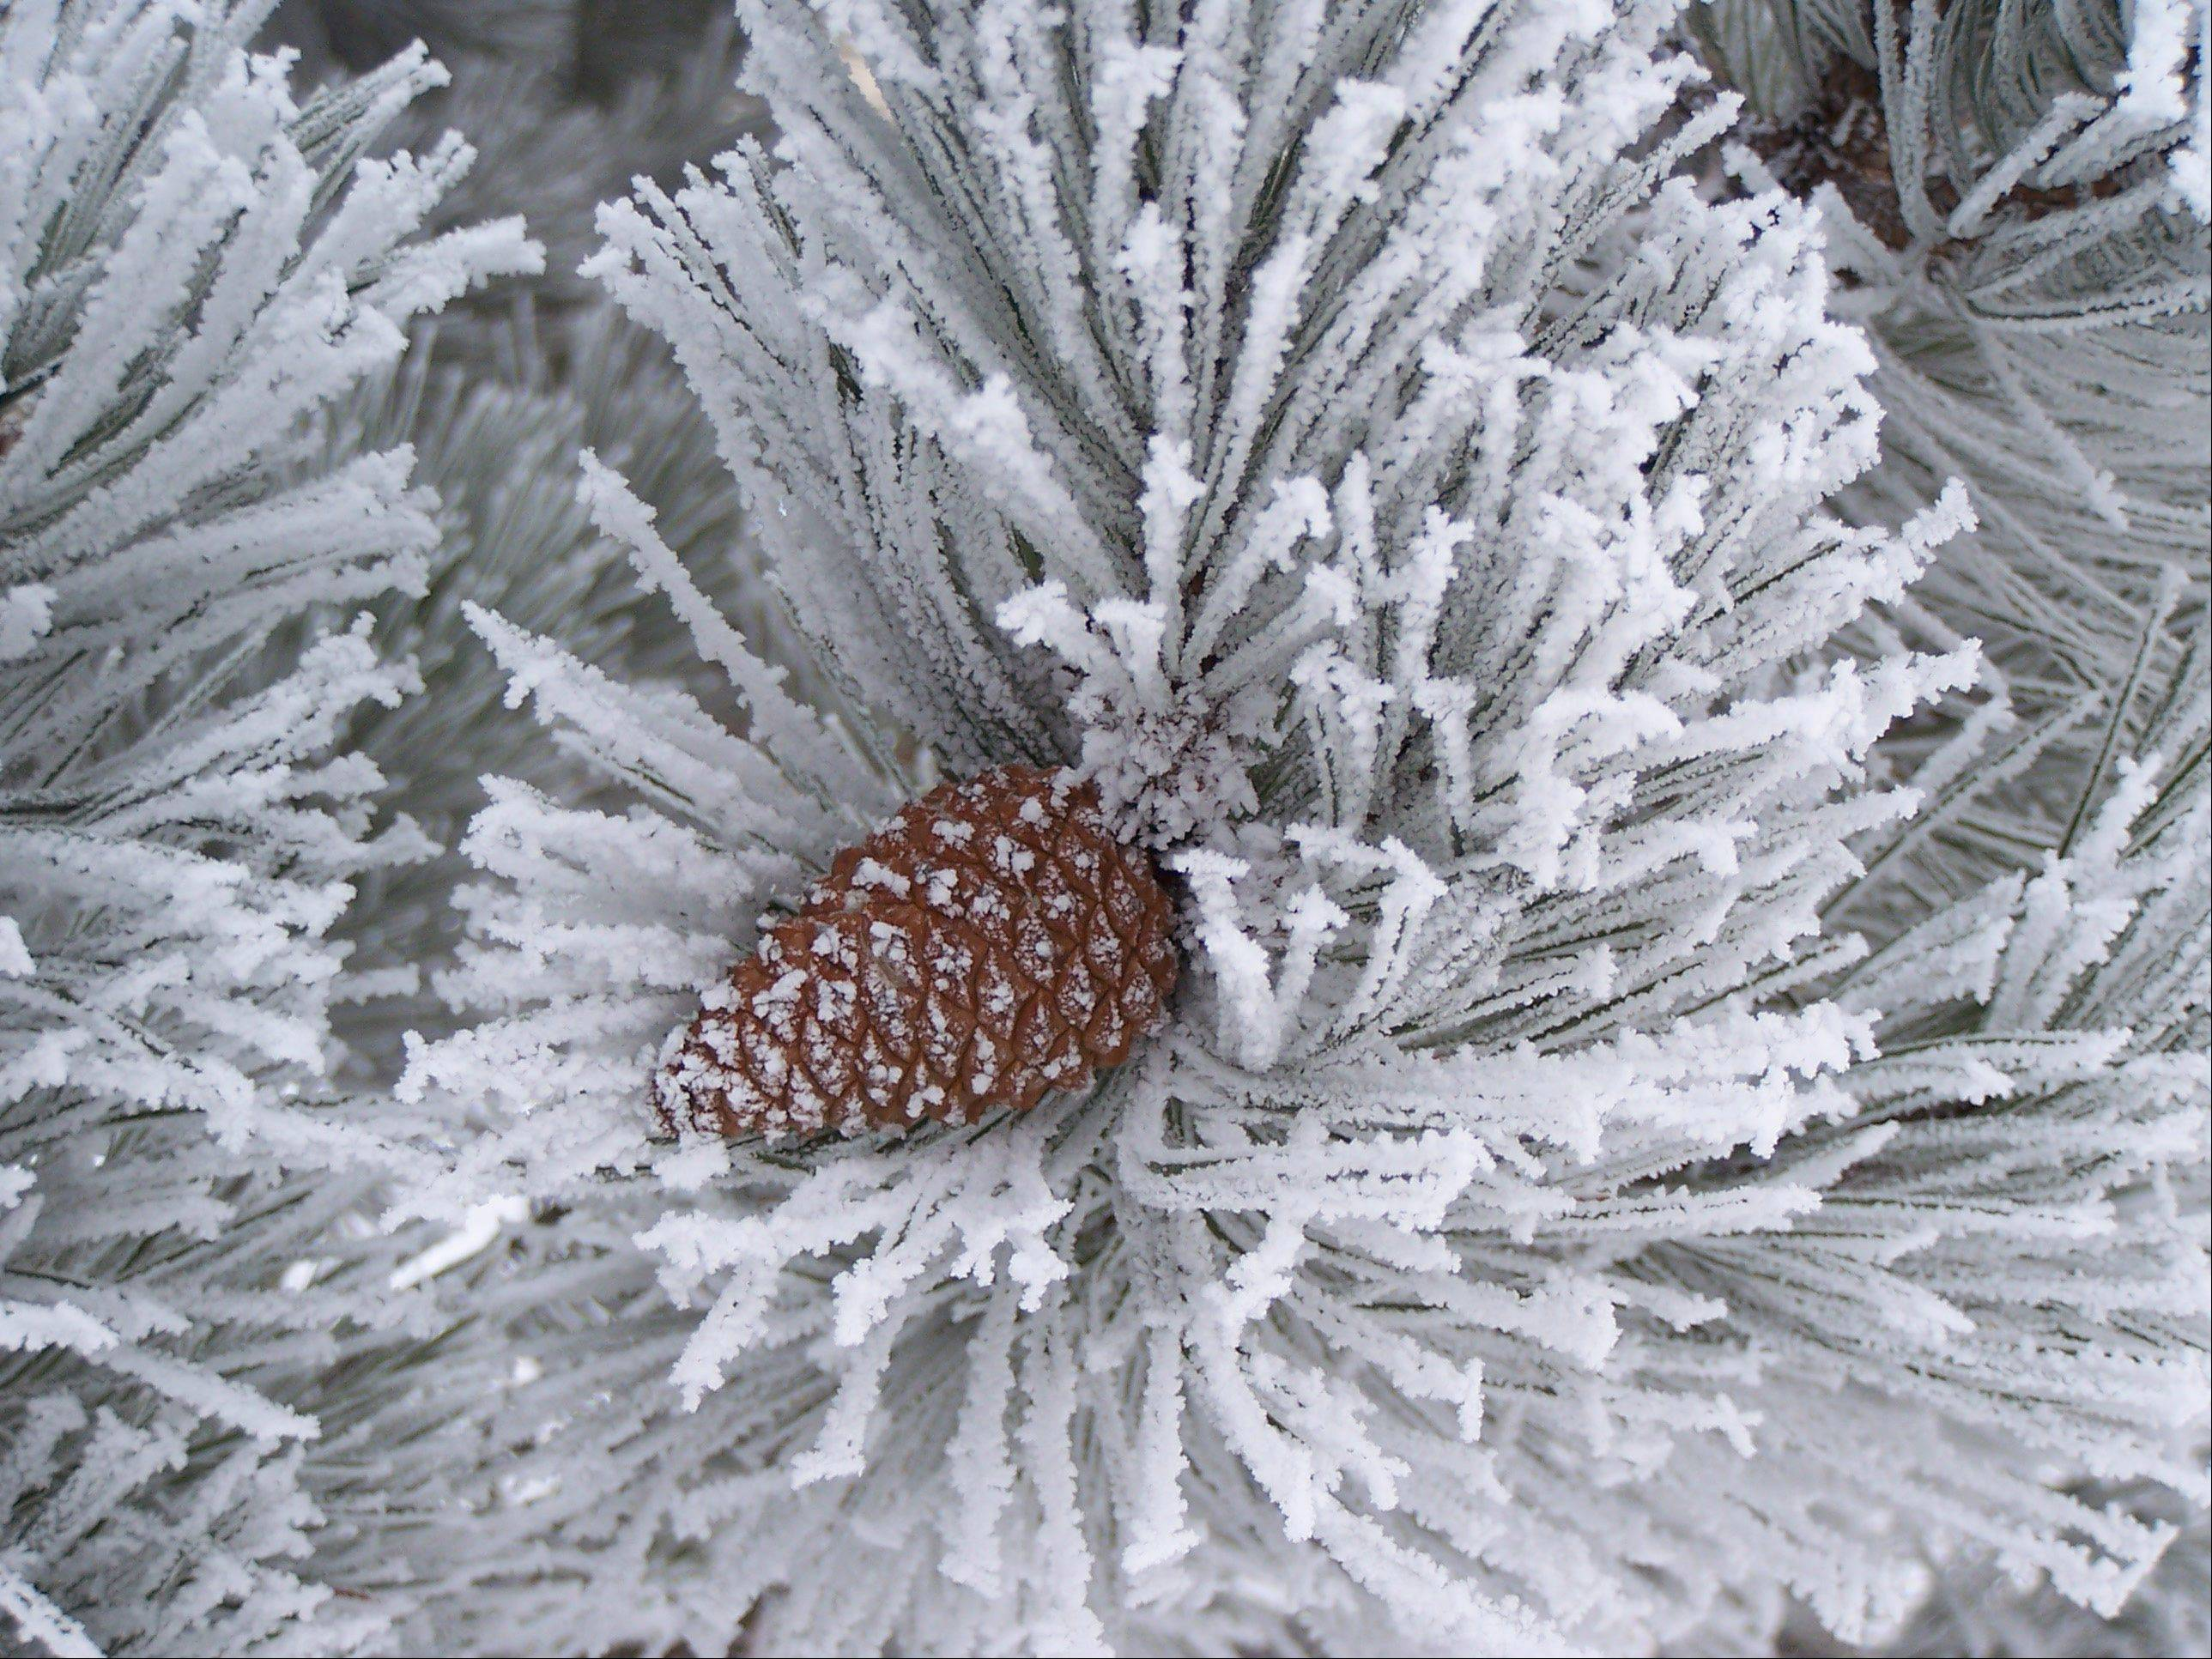 While we didn't receive a lot of snow, last winter did manage to produce a wonderful hoar frost here in Algonquin.